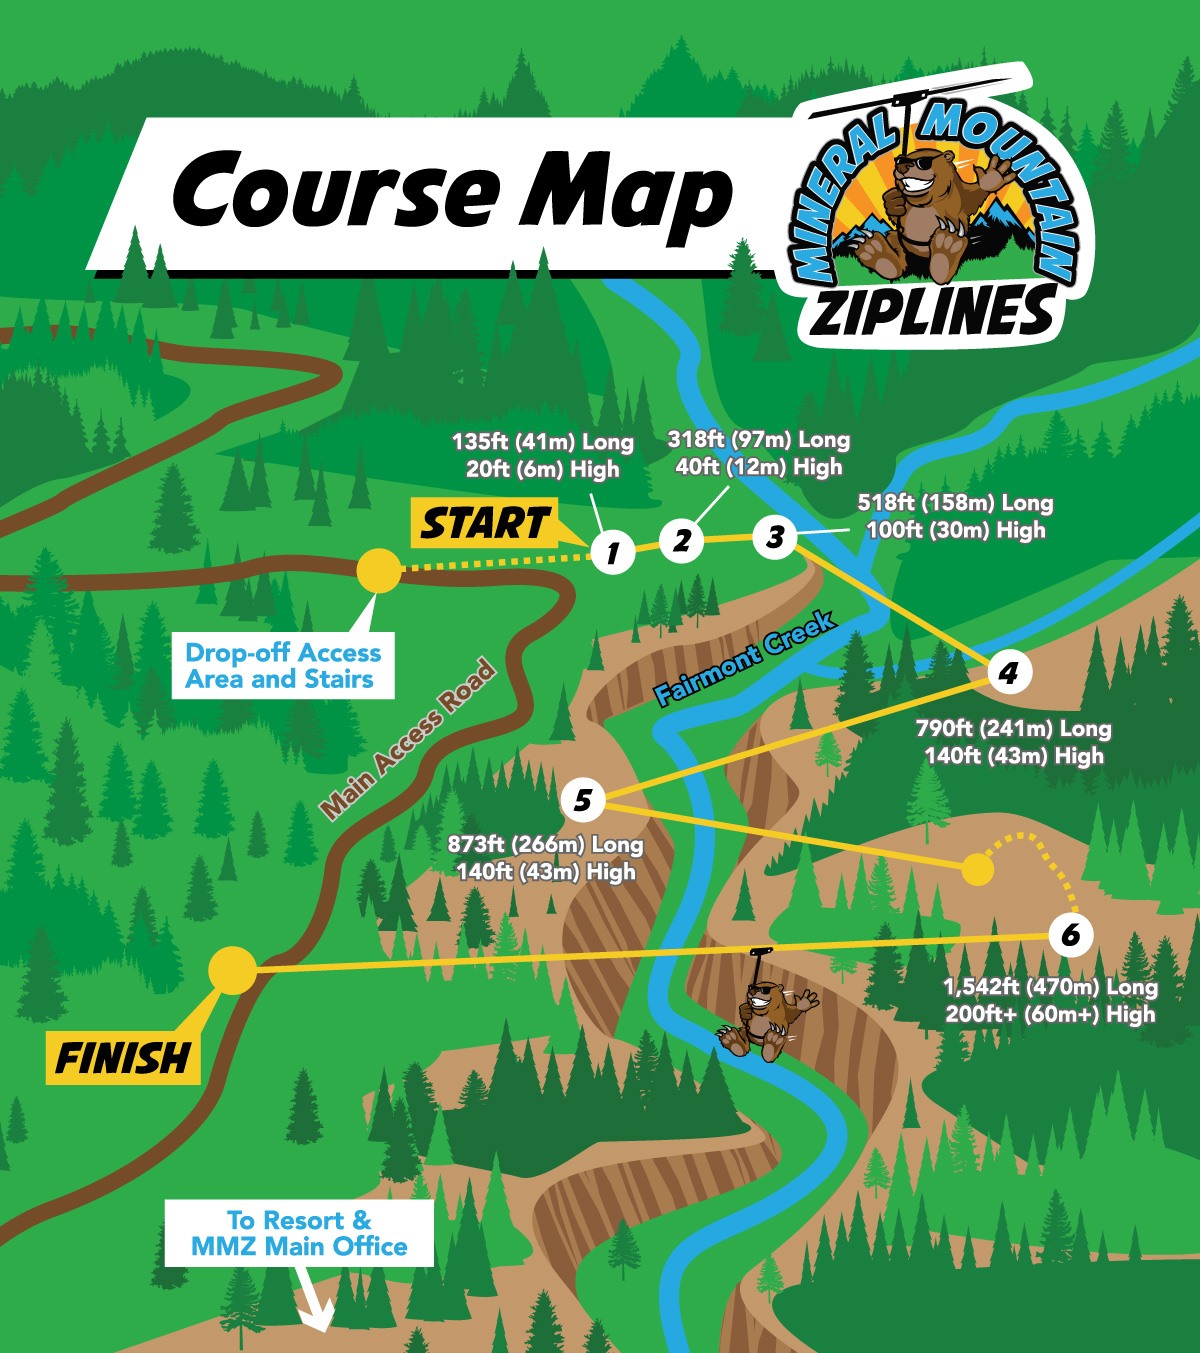 Mineral Mountain Ziplines at Fairmont Hot Springs Course Map